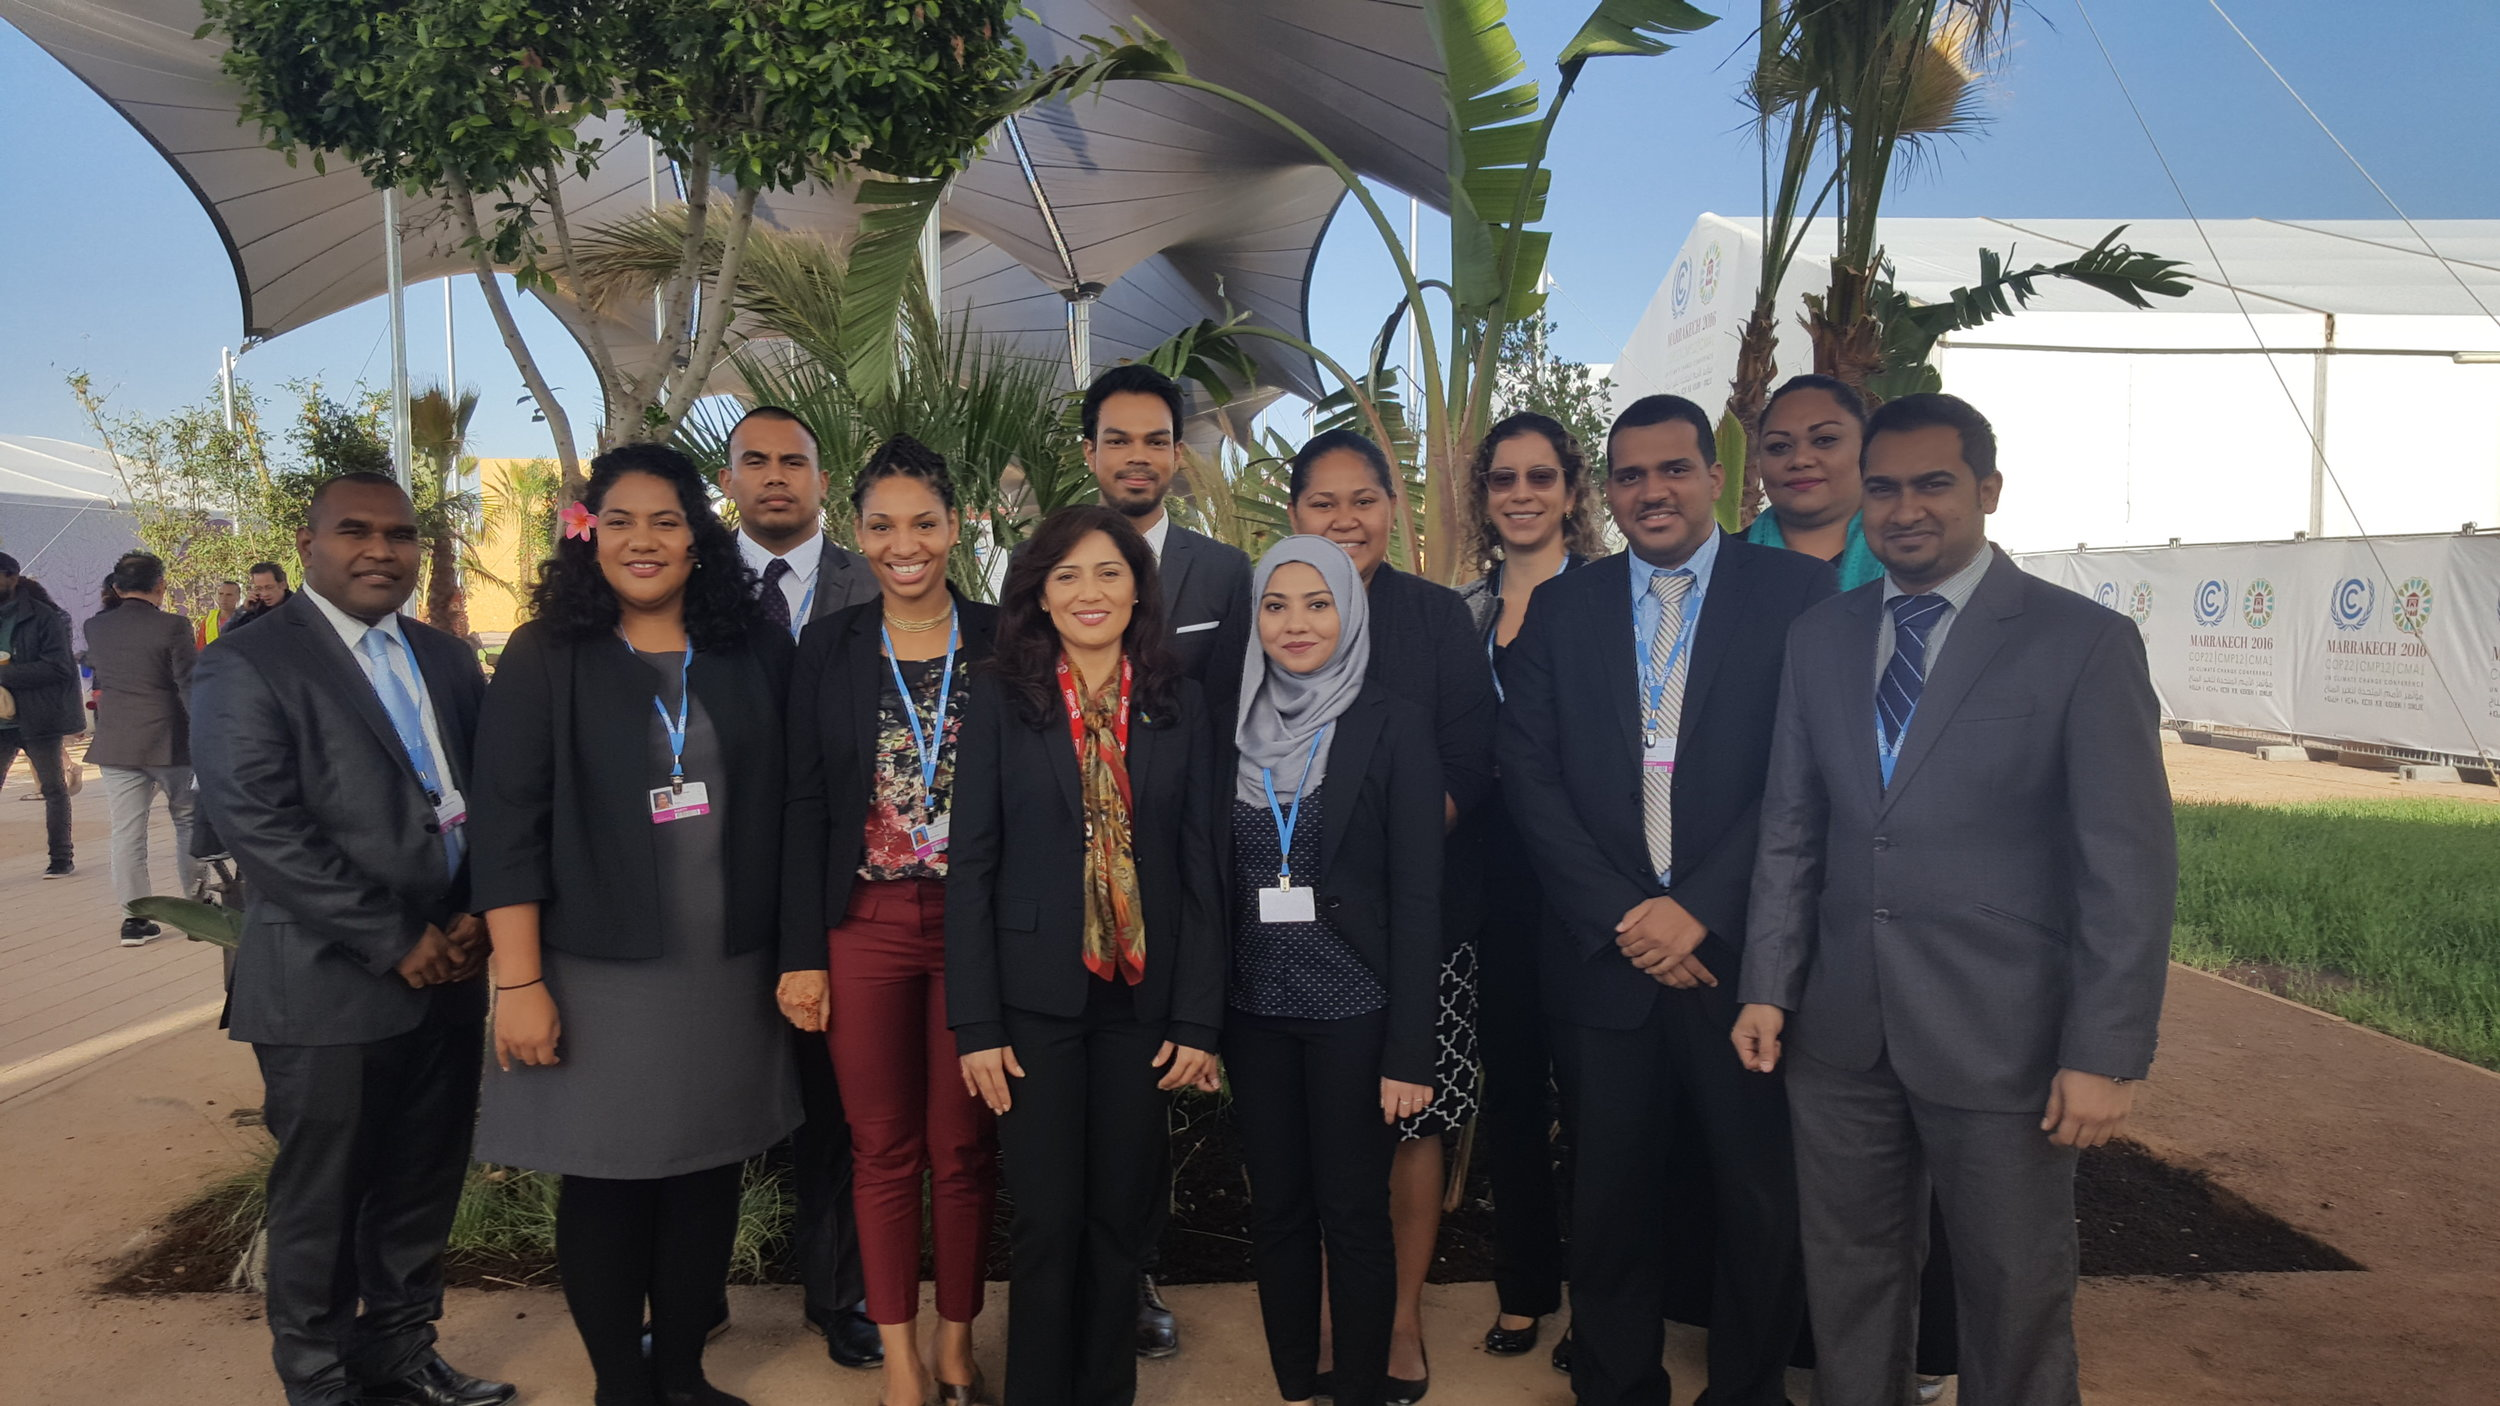 The 2014, 2015, and 2016 classes of AOSIS Fellows supporting AOSIS at COP22 in Marrakech.